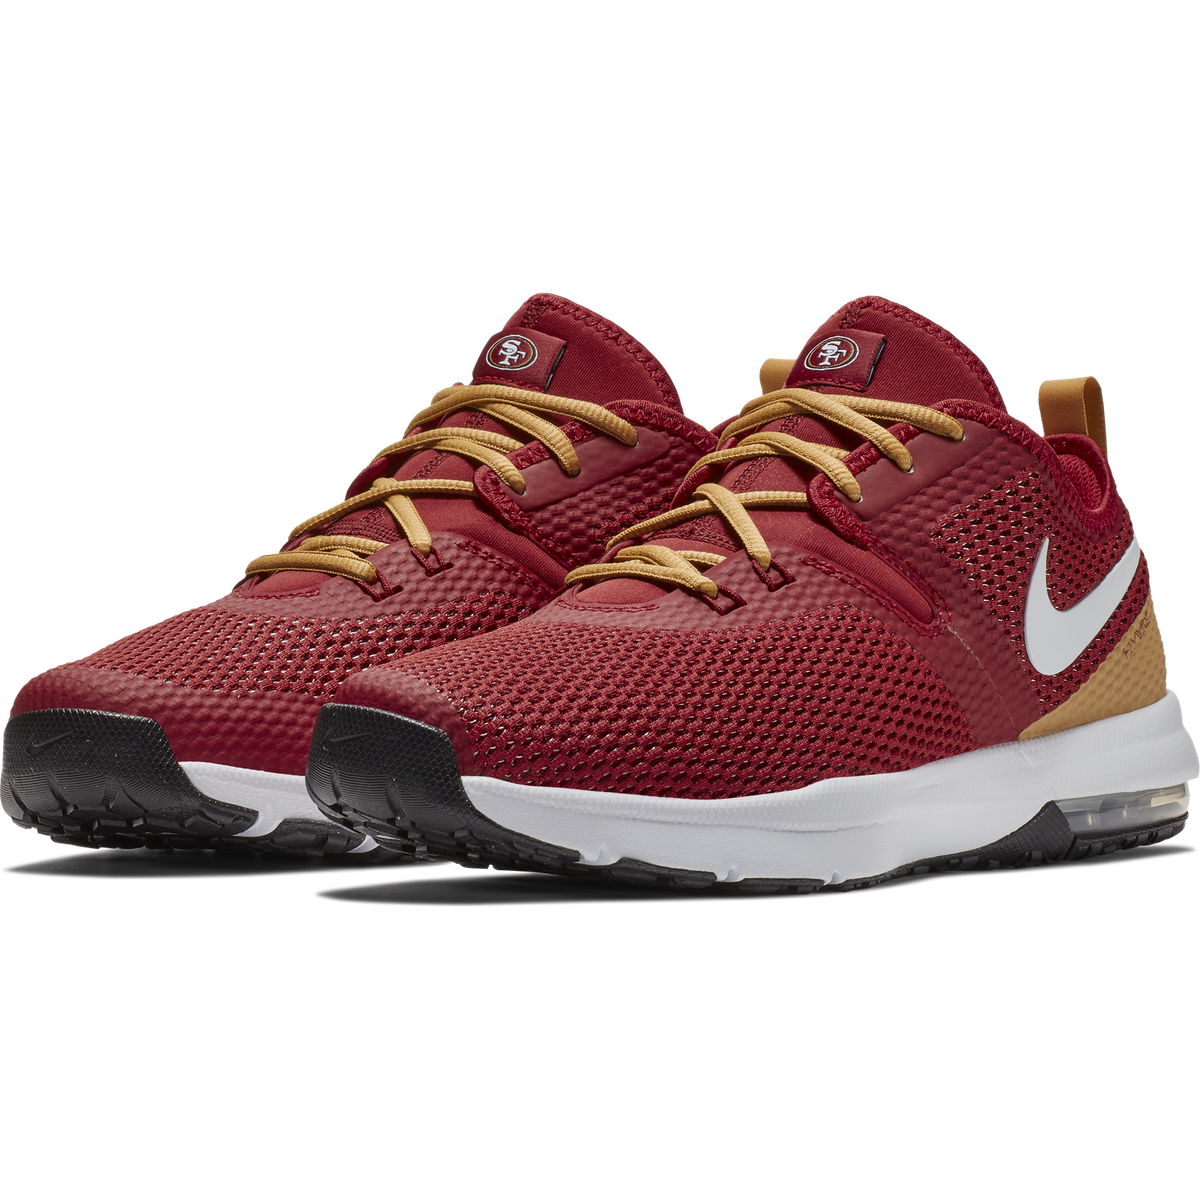 Nike releases new NFL themed Air Max Typha 2 shoe collection